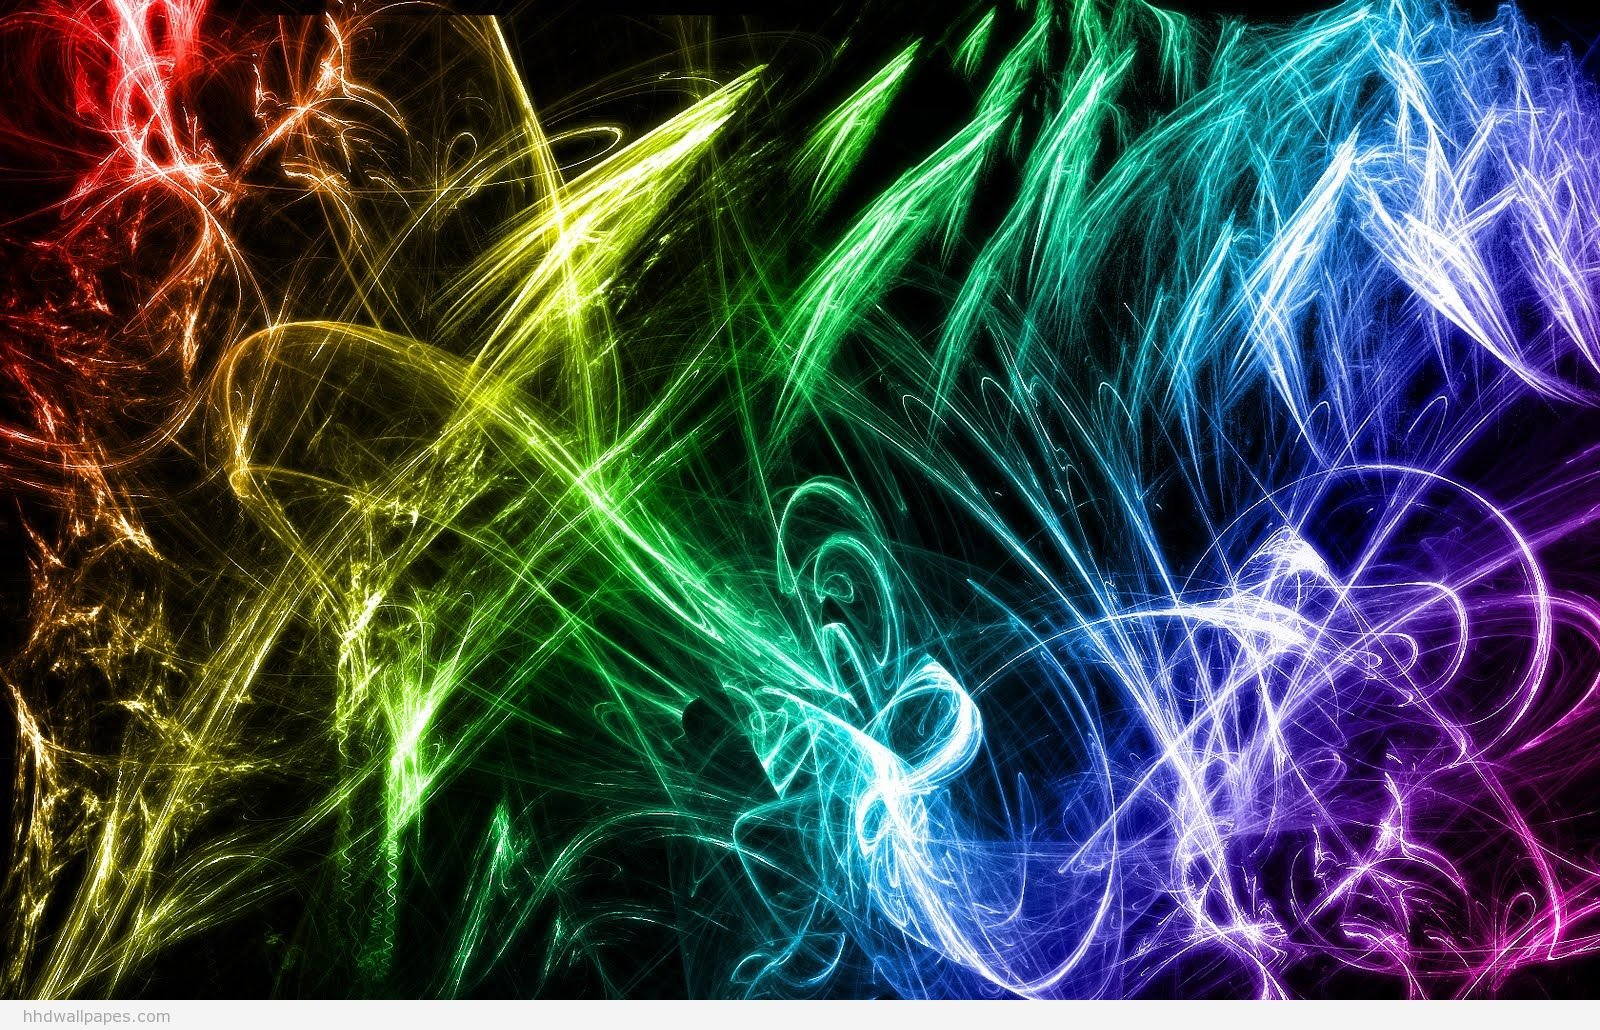 HD Wallpapers Colorful Abstract Desktop Backgrounds Most Beautiful 1600x1030